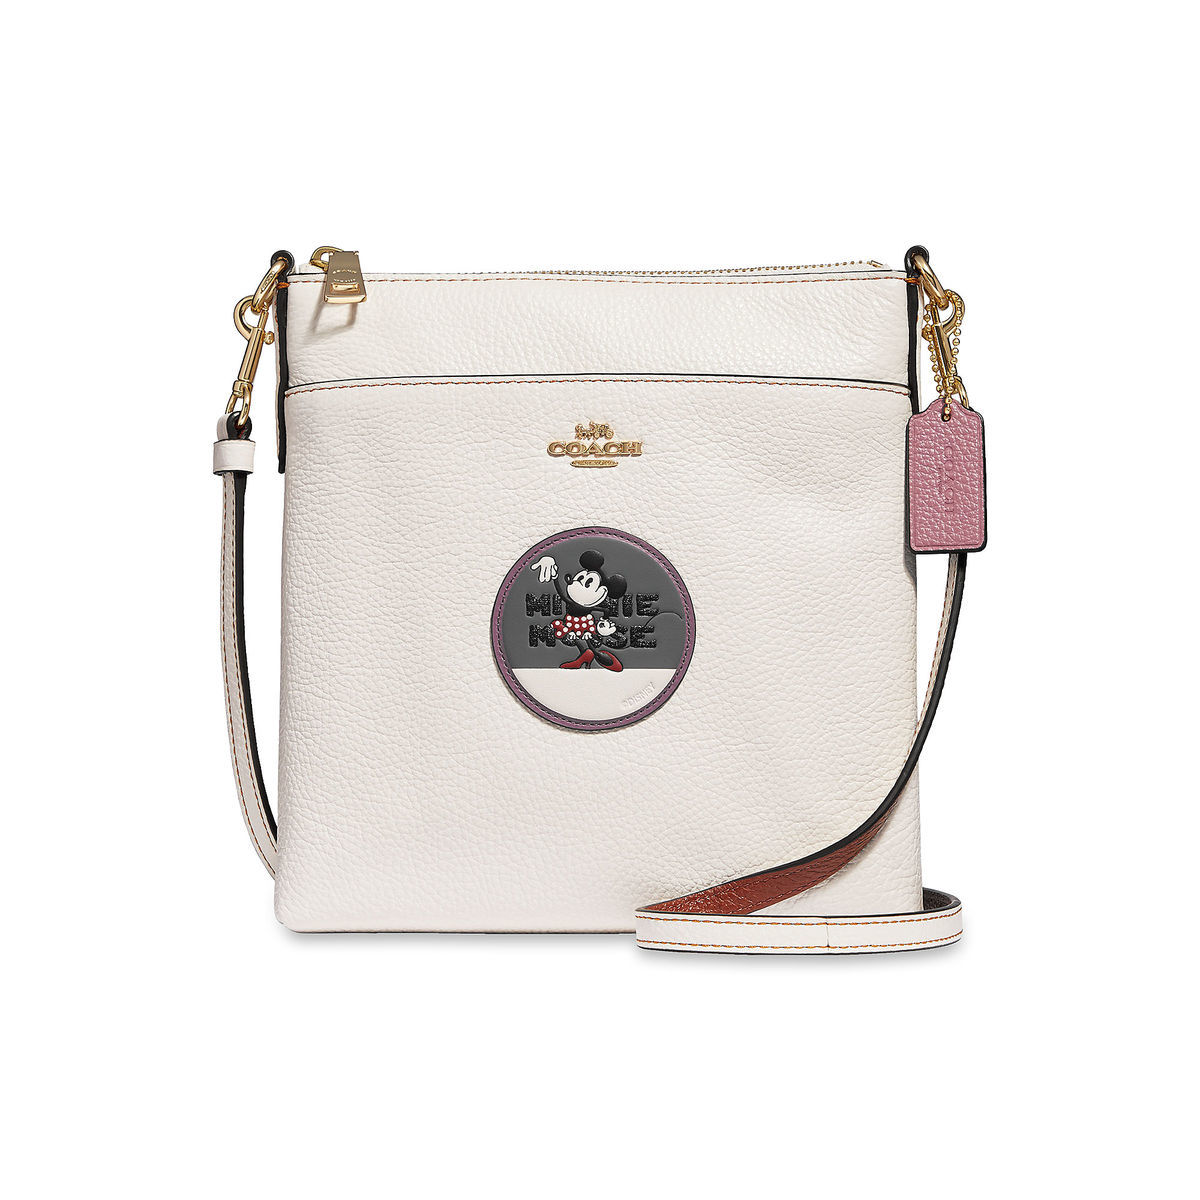 Product Image of Minnie Mouse Crossbody Bag by COACH # 1